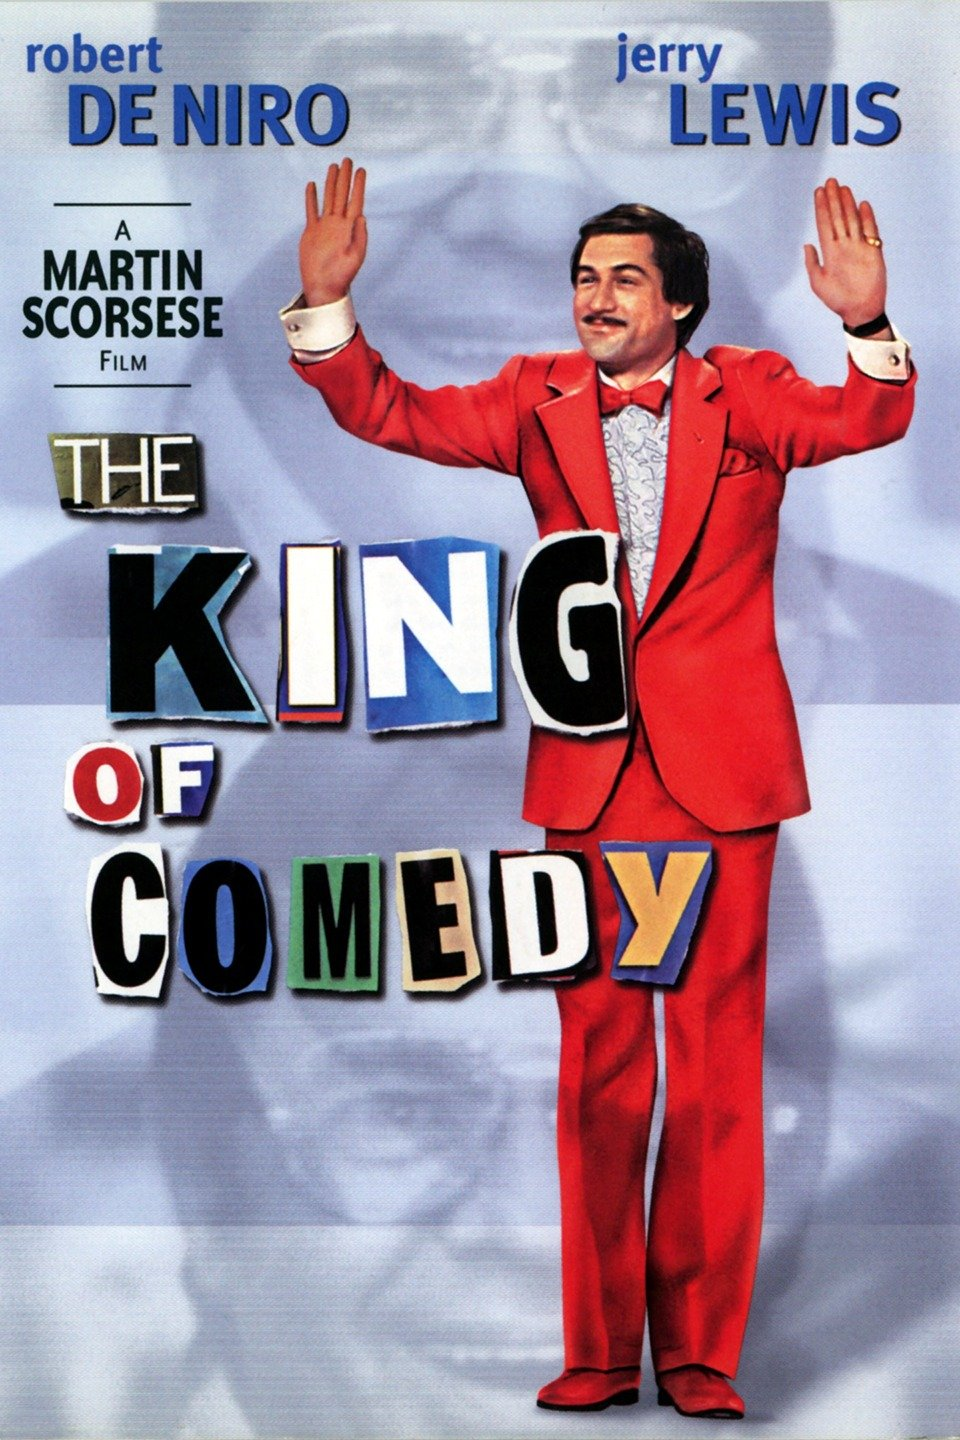 Image result for Martin Scorsese's 1982 film The King of Comedy